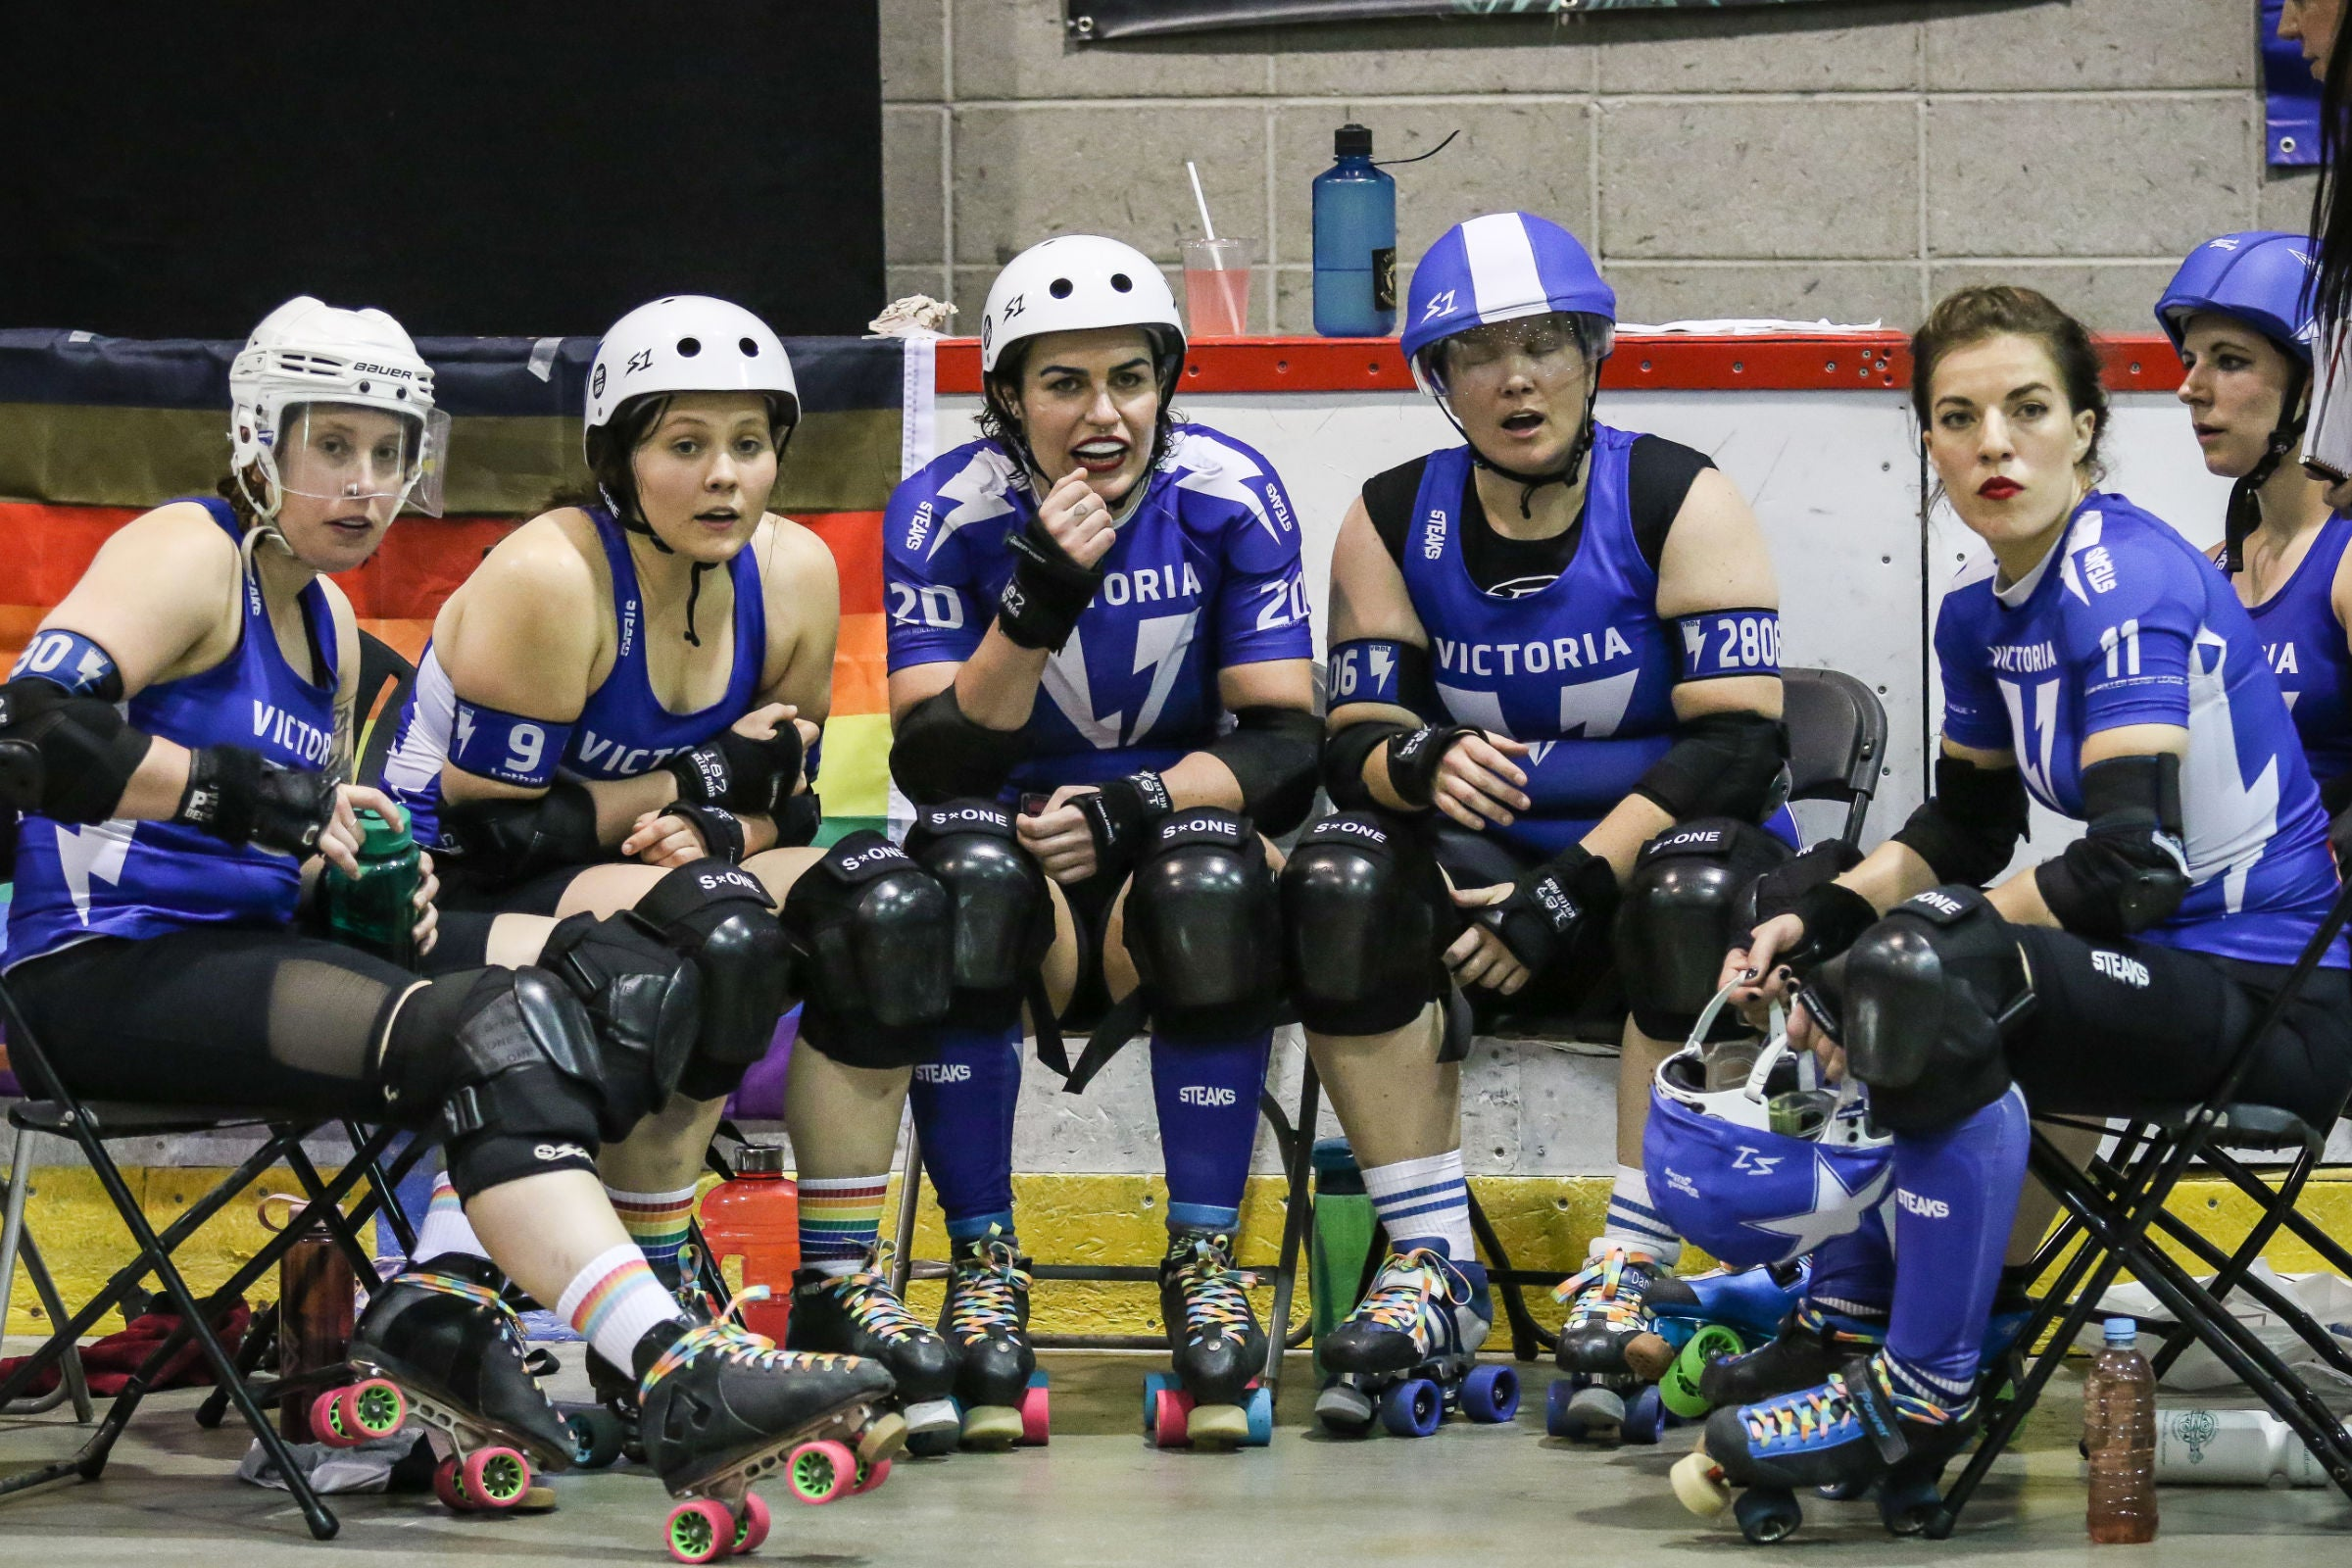 Athletes from Victorian Roller Derby in STEAKS® Contact and Team Wear.